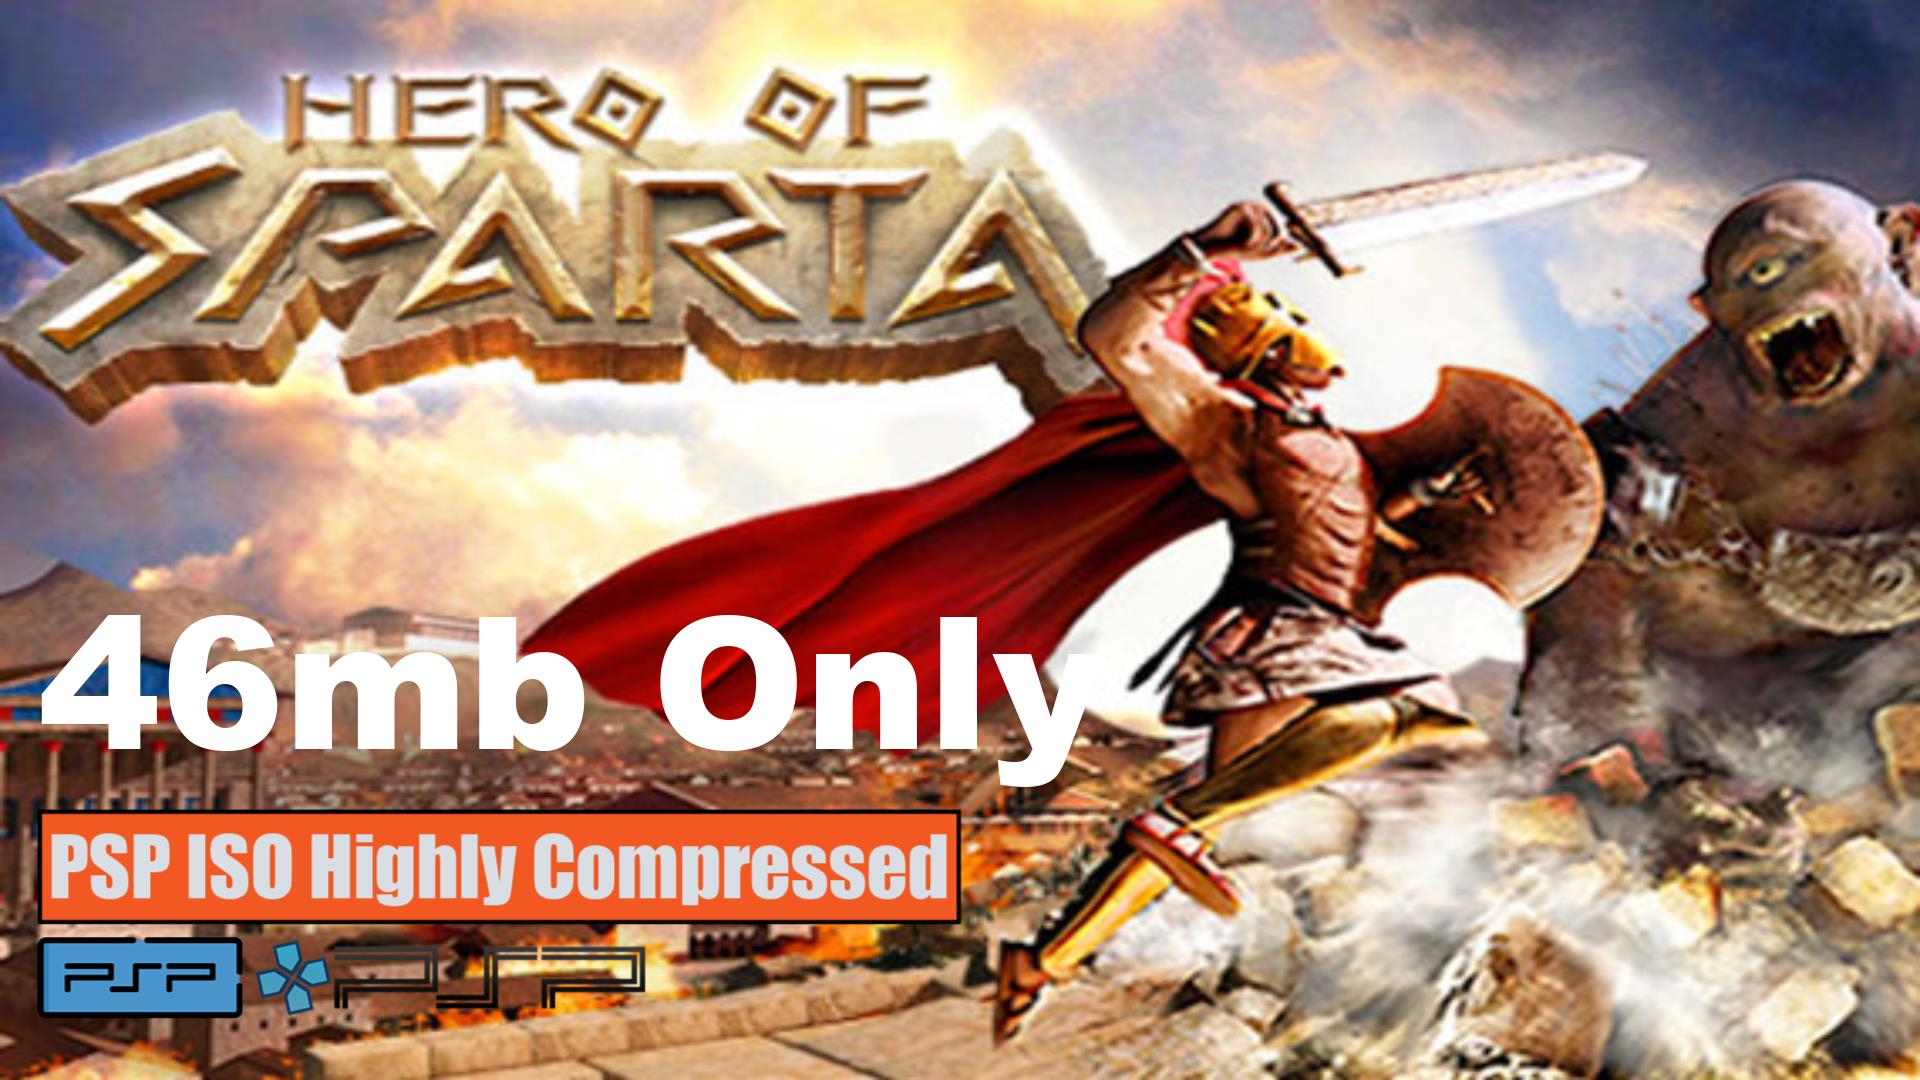 Hero of Sparta PSP ISO Highly Compressed